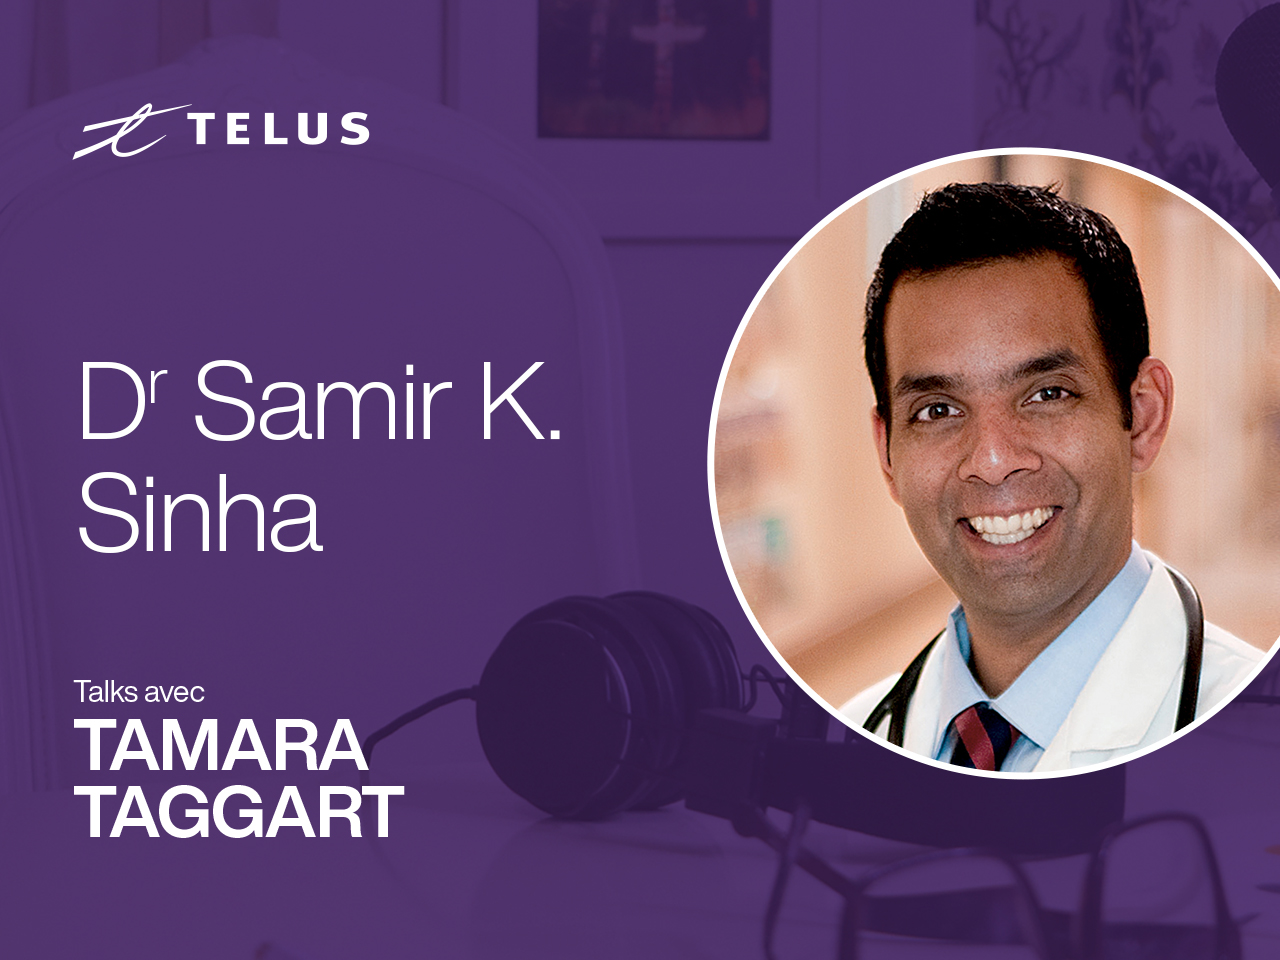 Dr. Samir Sinha, director of geriatrics at Sinai Health in Toronto